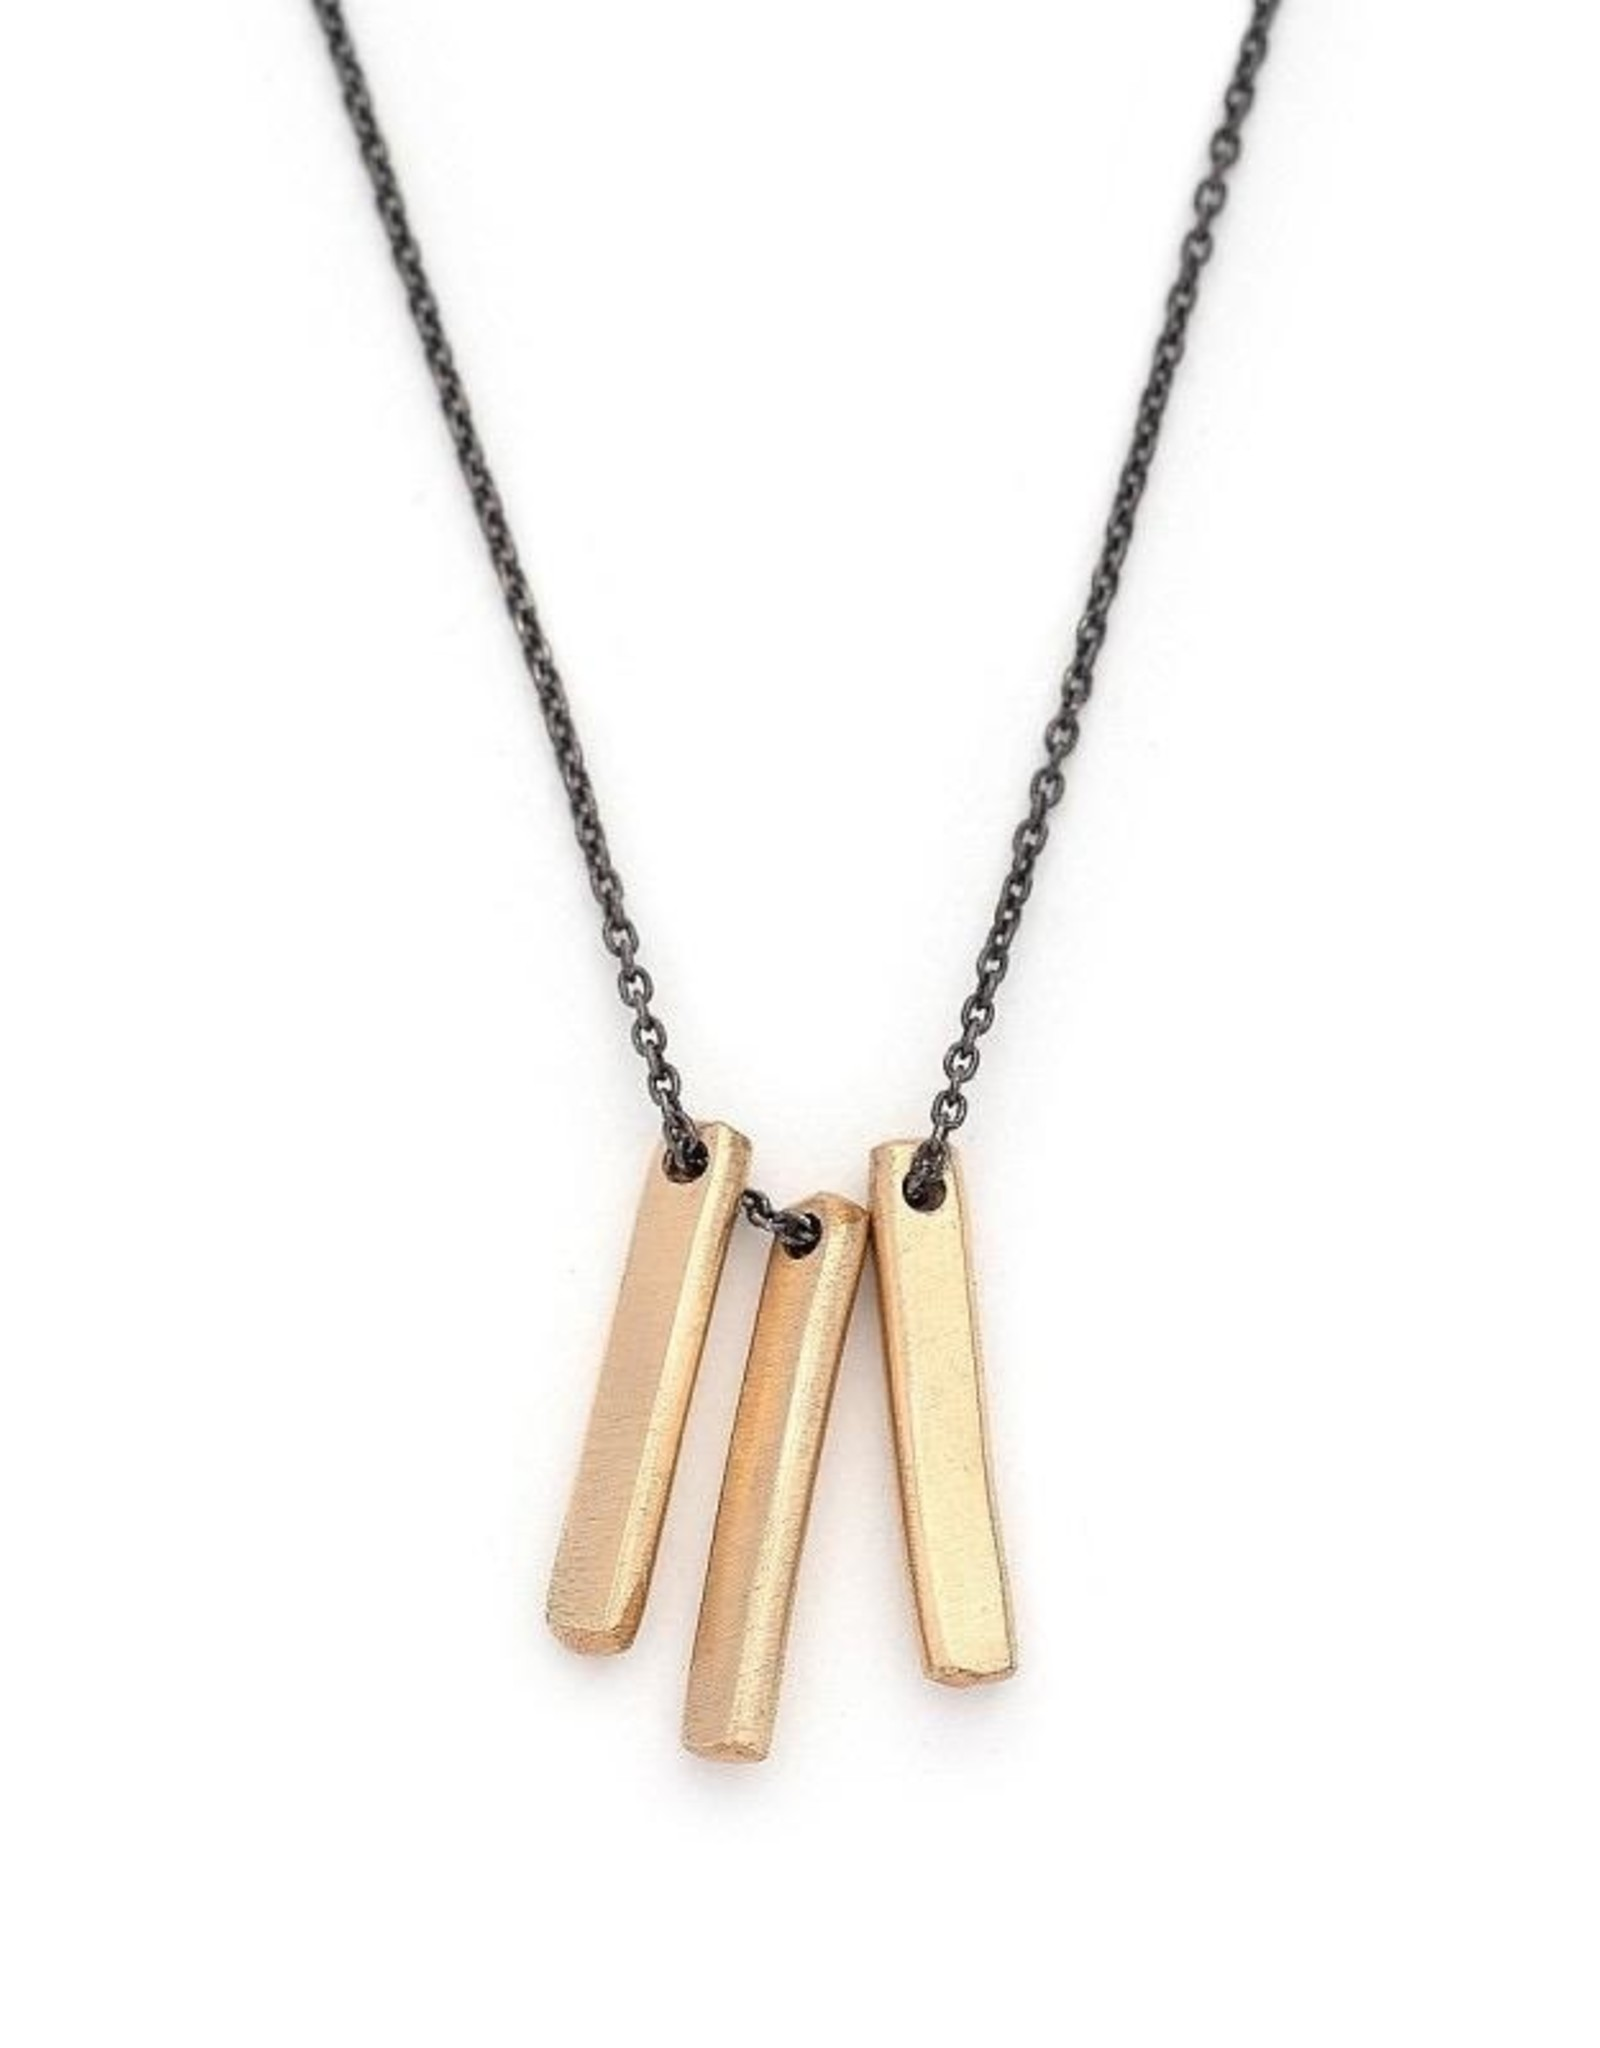 Handmade Three 14k Goldfill Bar on Oxidized Sterling Chain Necklace